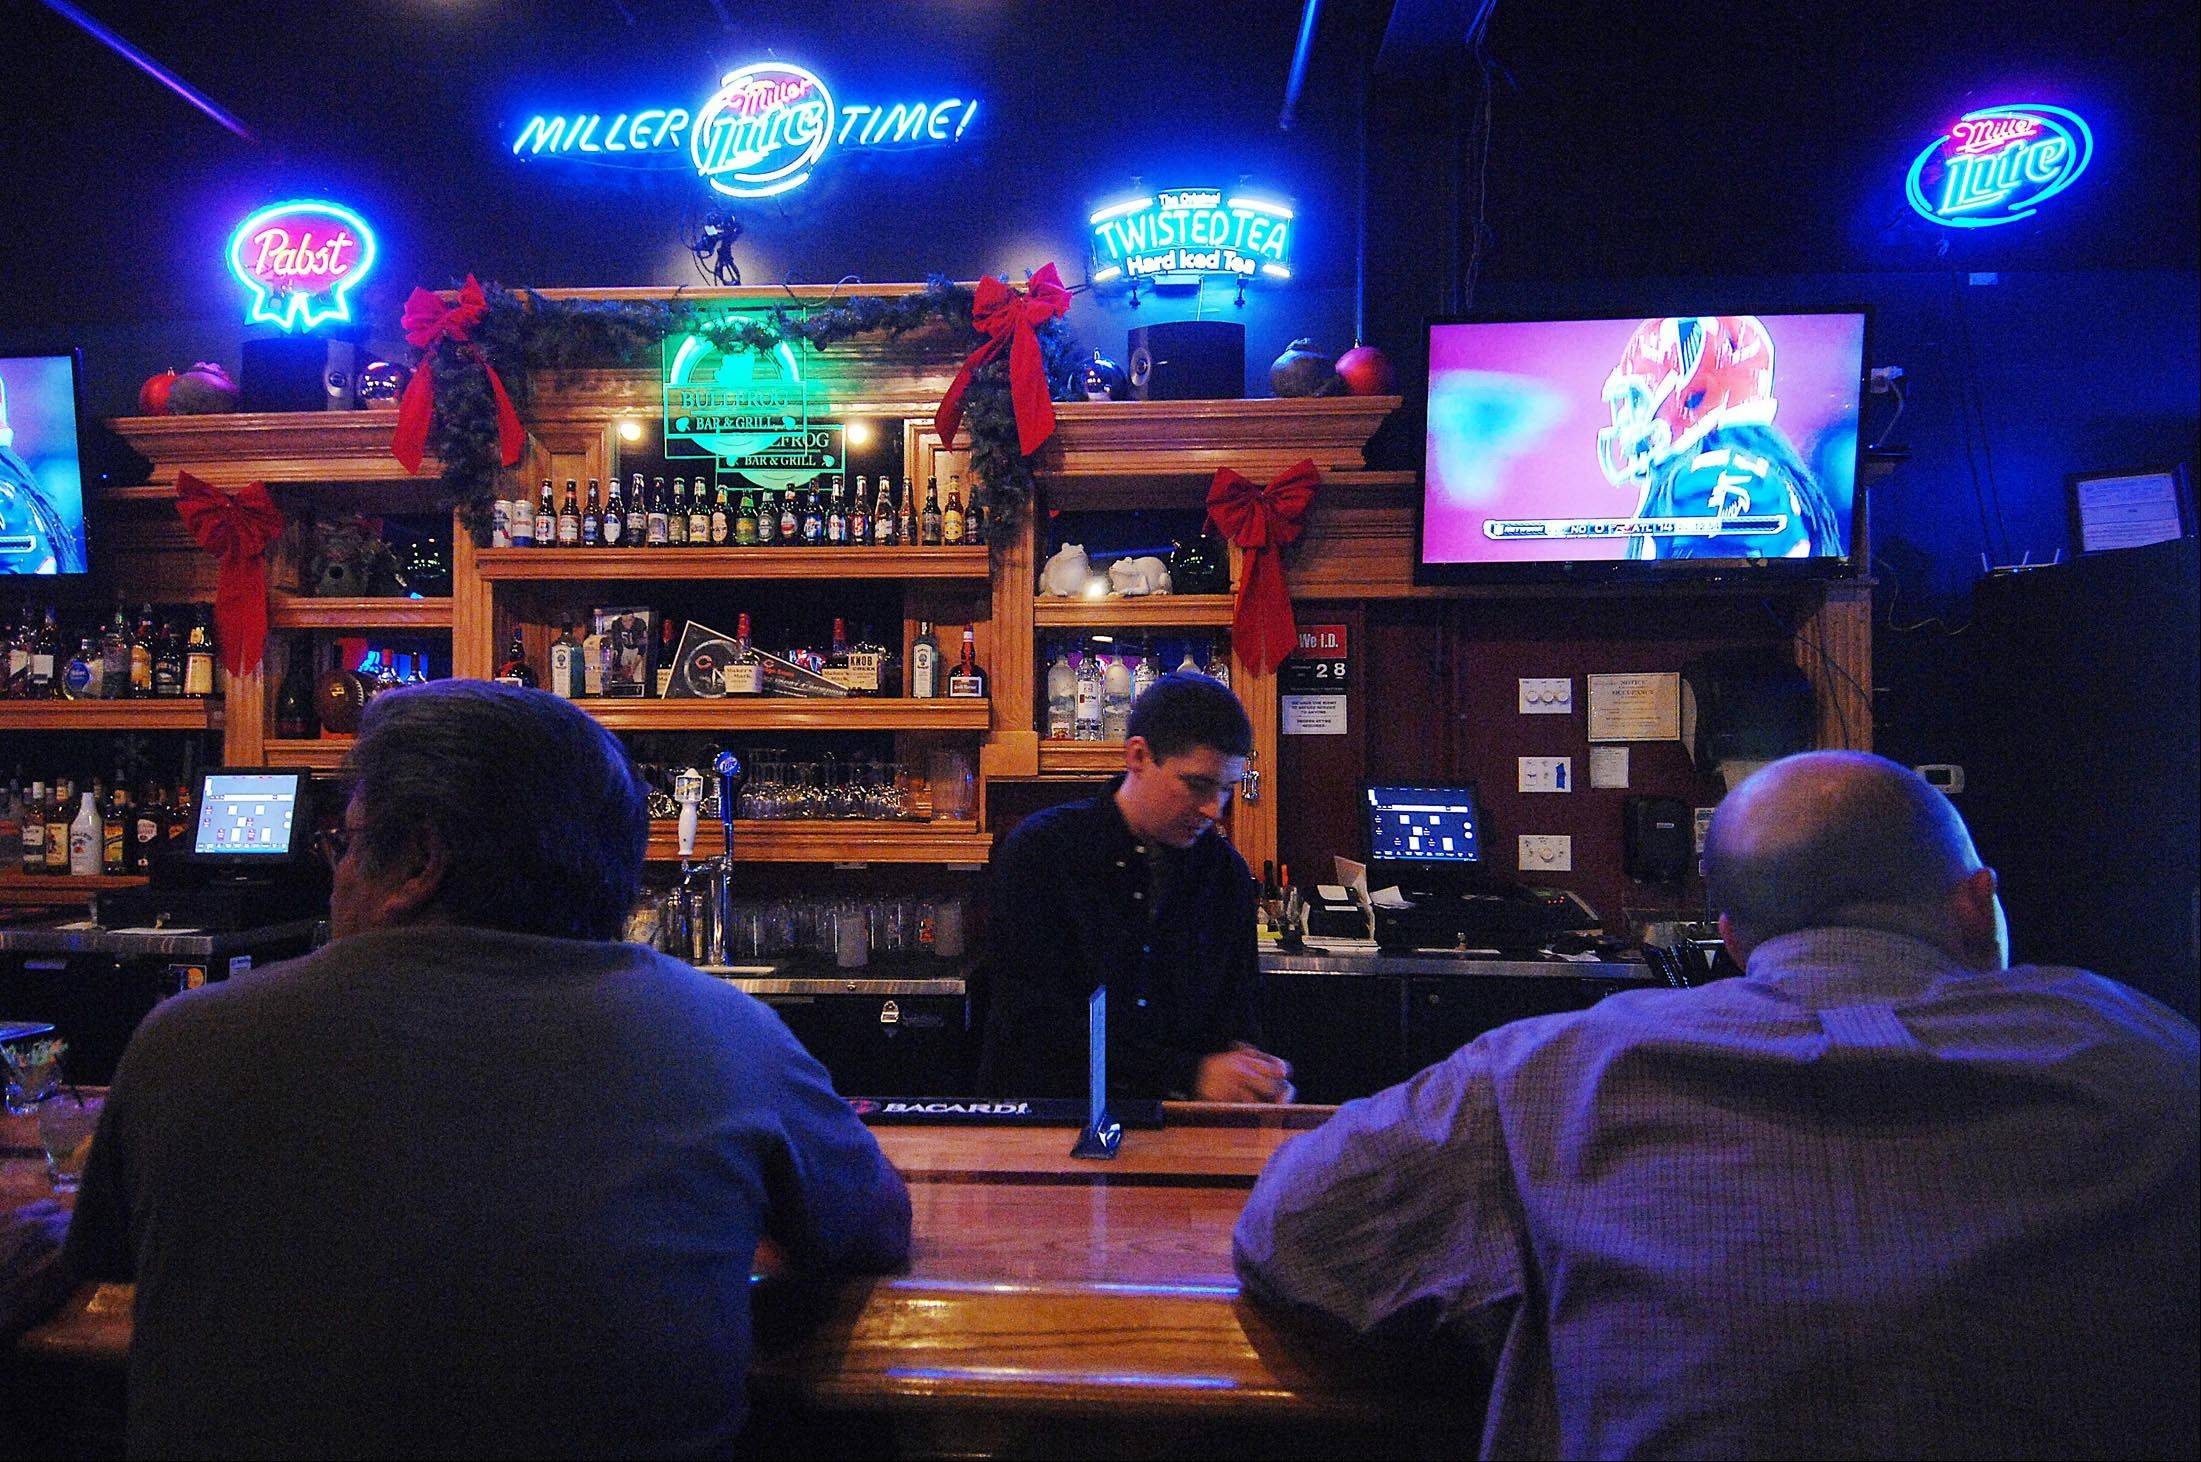 Bartender Mike Morrison pours drinks at the Chubby Bullfrog in West Dundee.